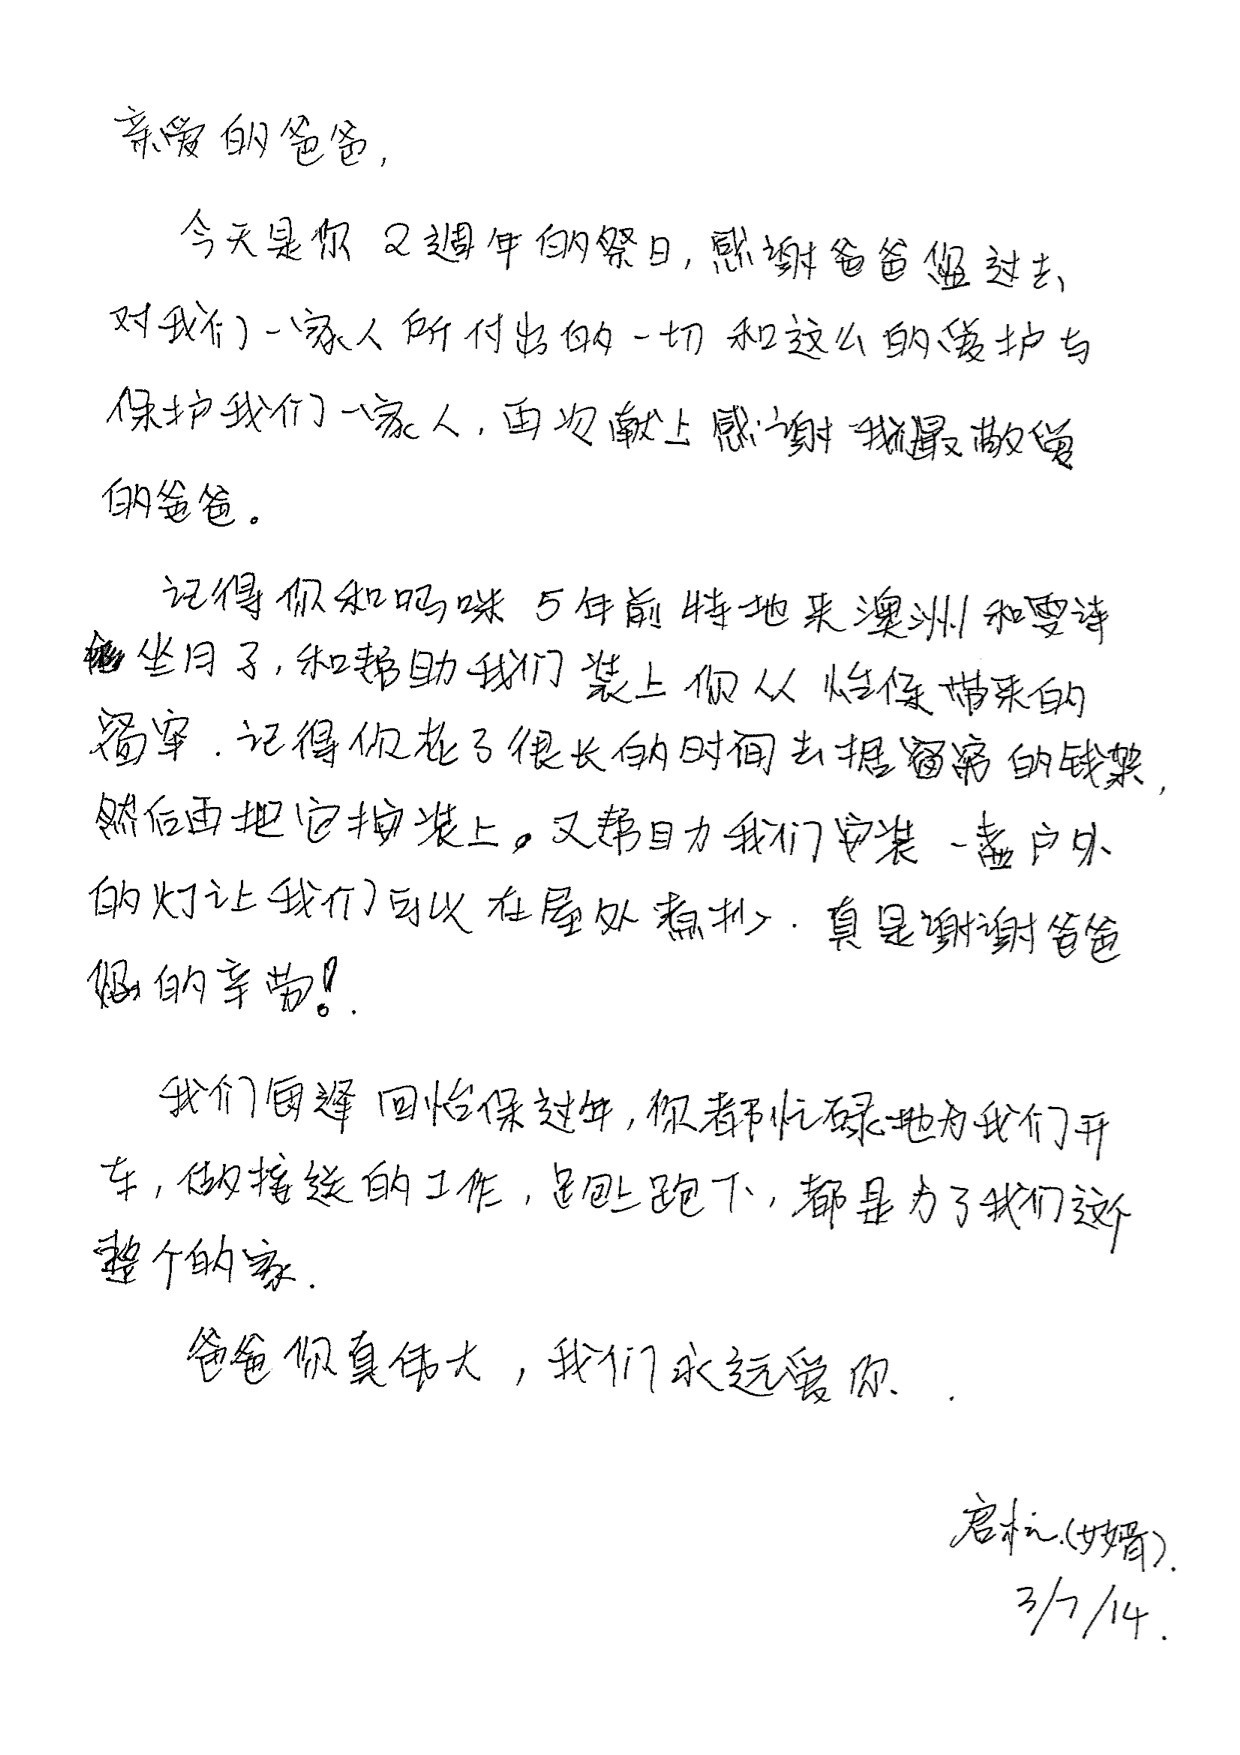 Qi Hang's Letter on 2nd Anniversary